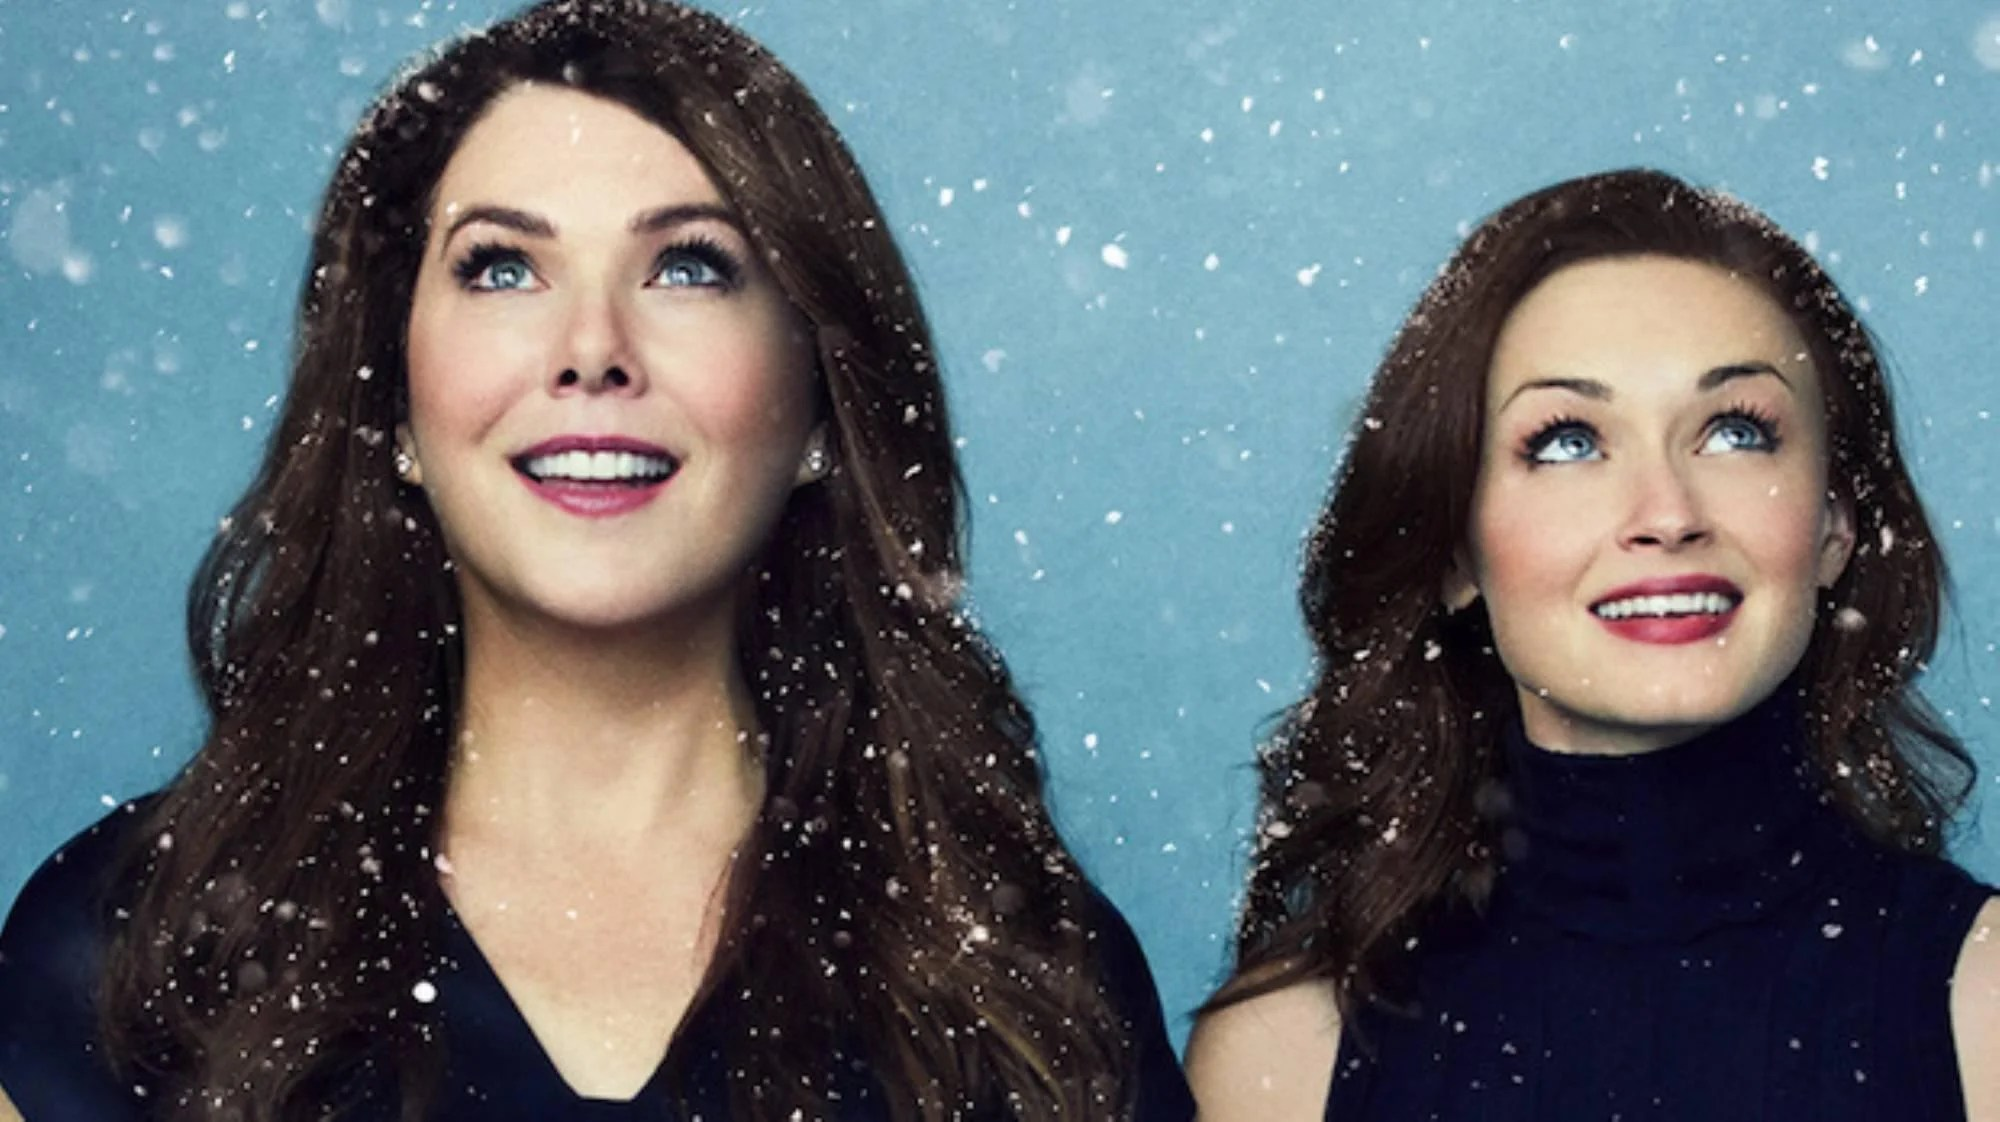 Gilmore Girls A Year In The Life Wallpaper Gilmore Girls Netflix How To Watch The New Seasonal